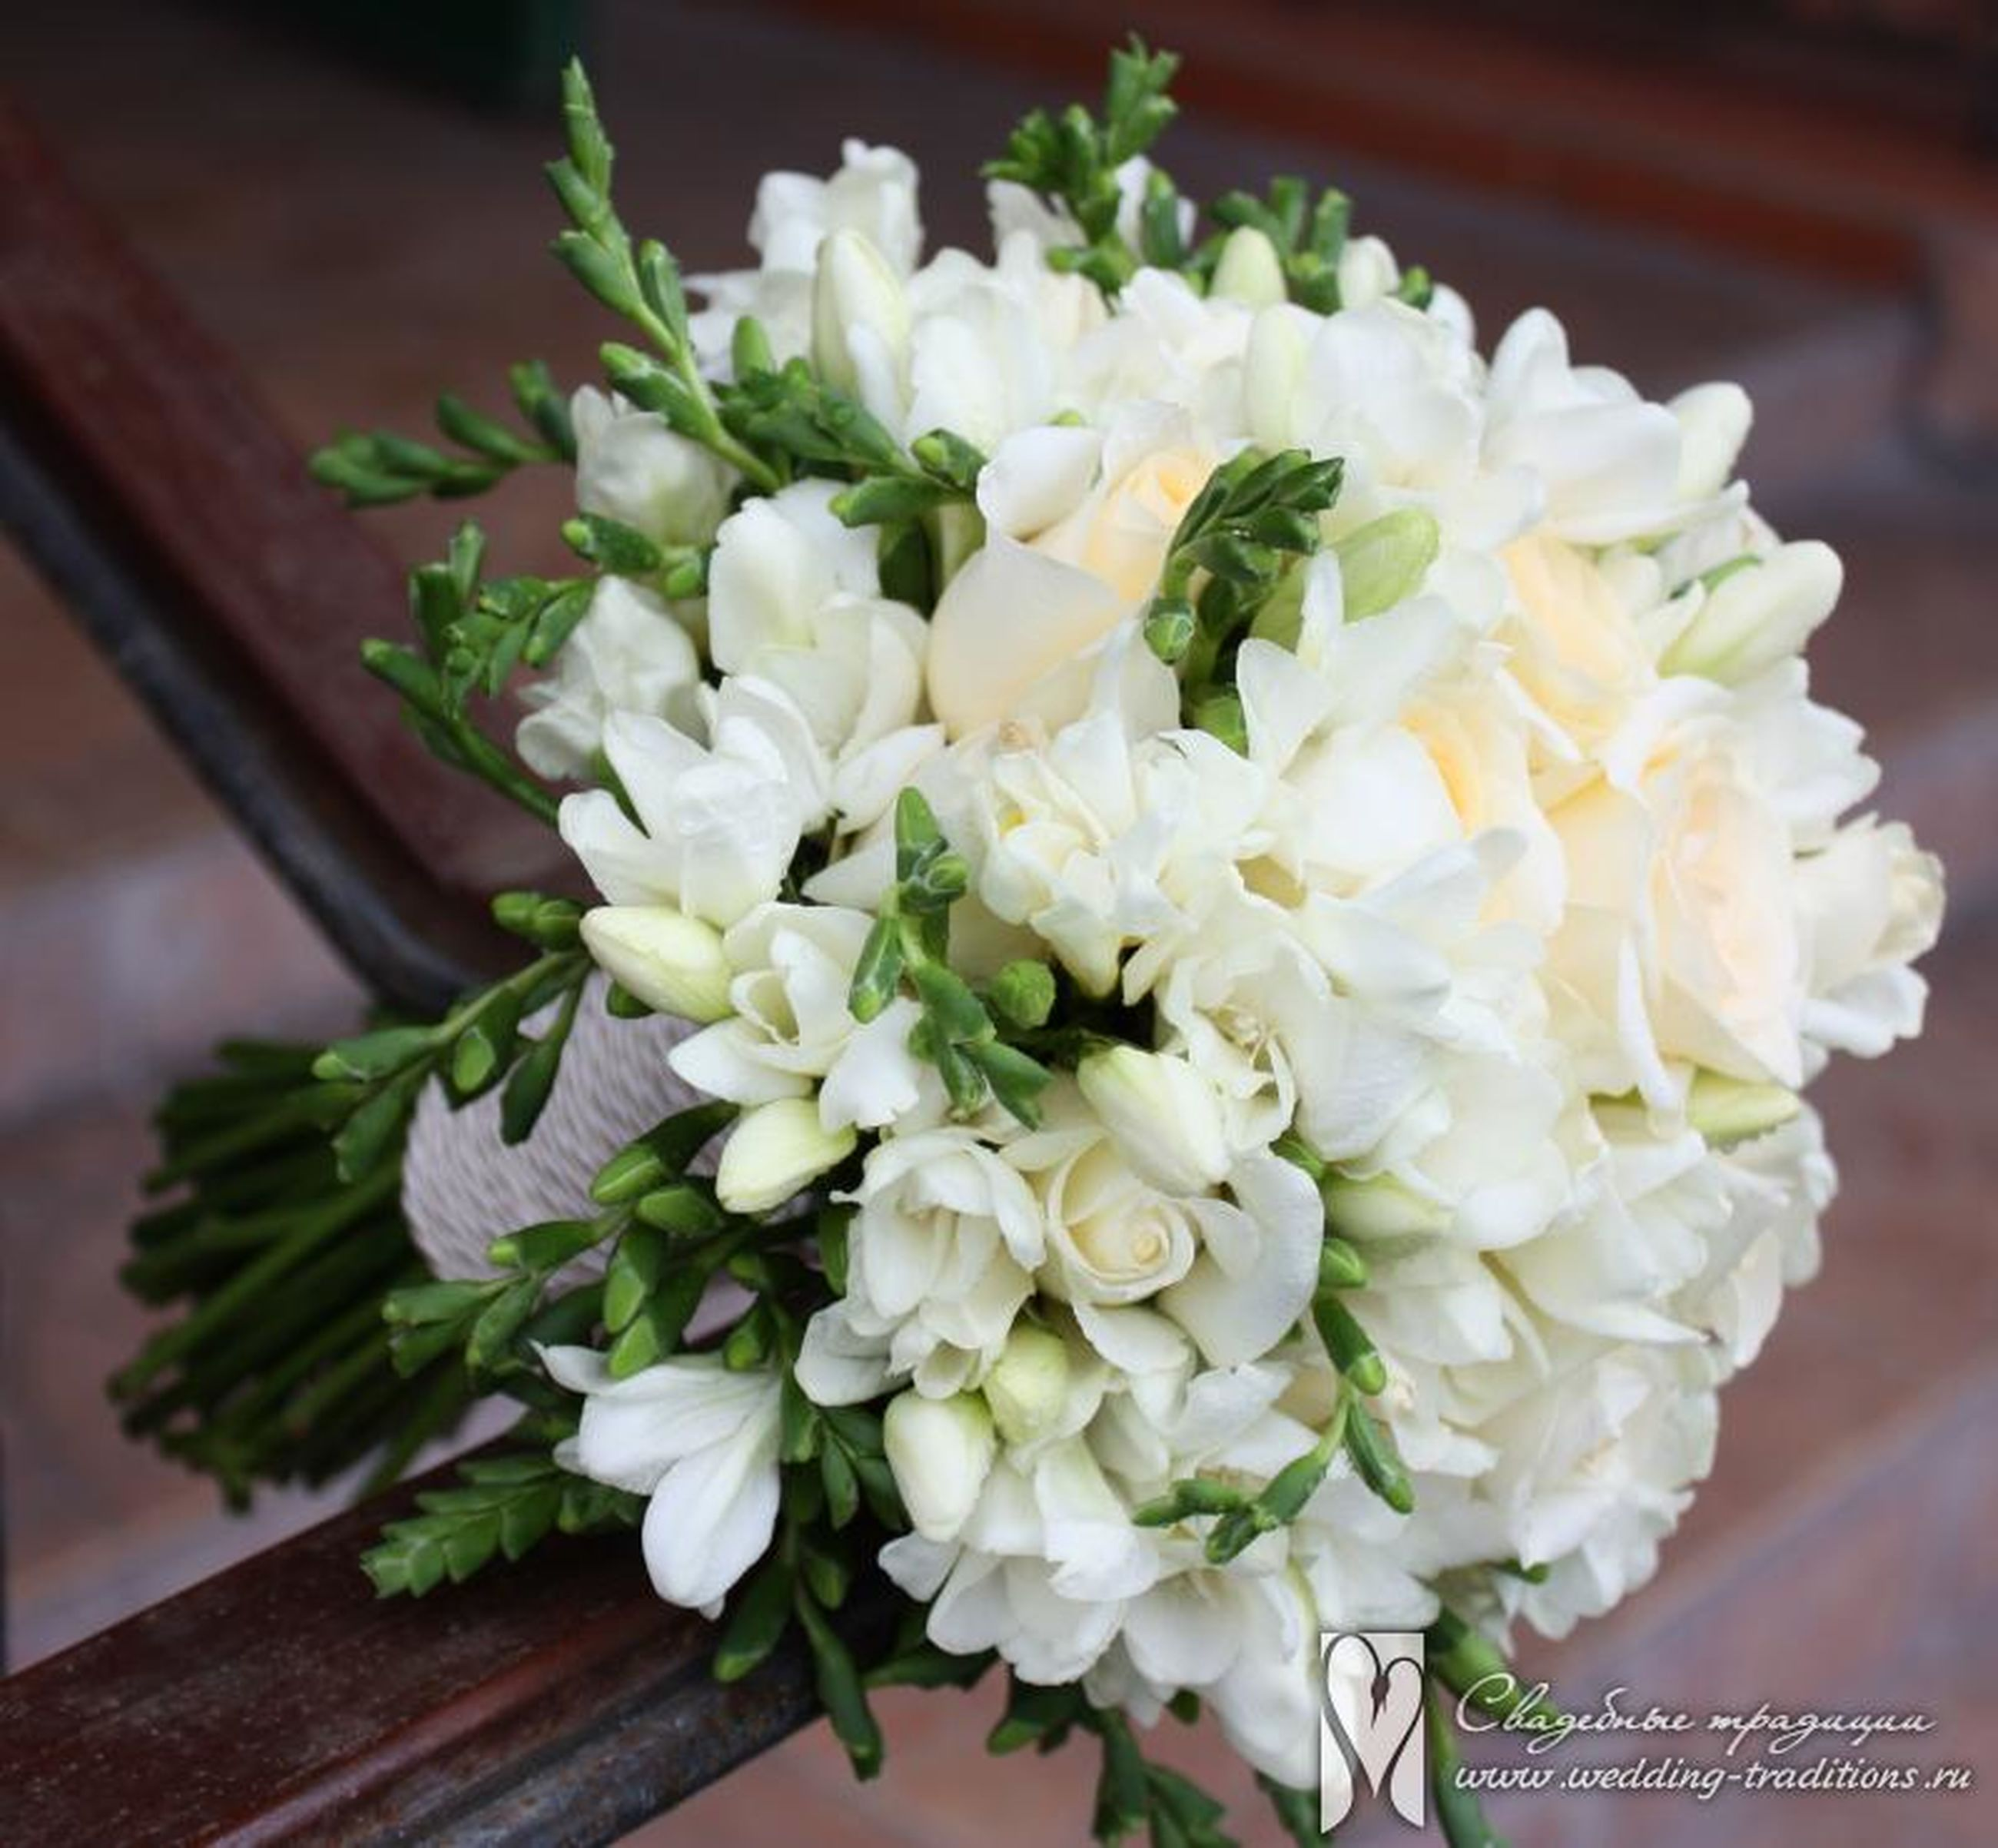 flower, freshness, petal, fragility, white color, flower head, beauty in nature, indoors, close-up, growth, focus on foreground, bunch of flowers, nature, plant, vase, bouquet, blossom, high angle view, blooming, white